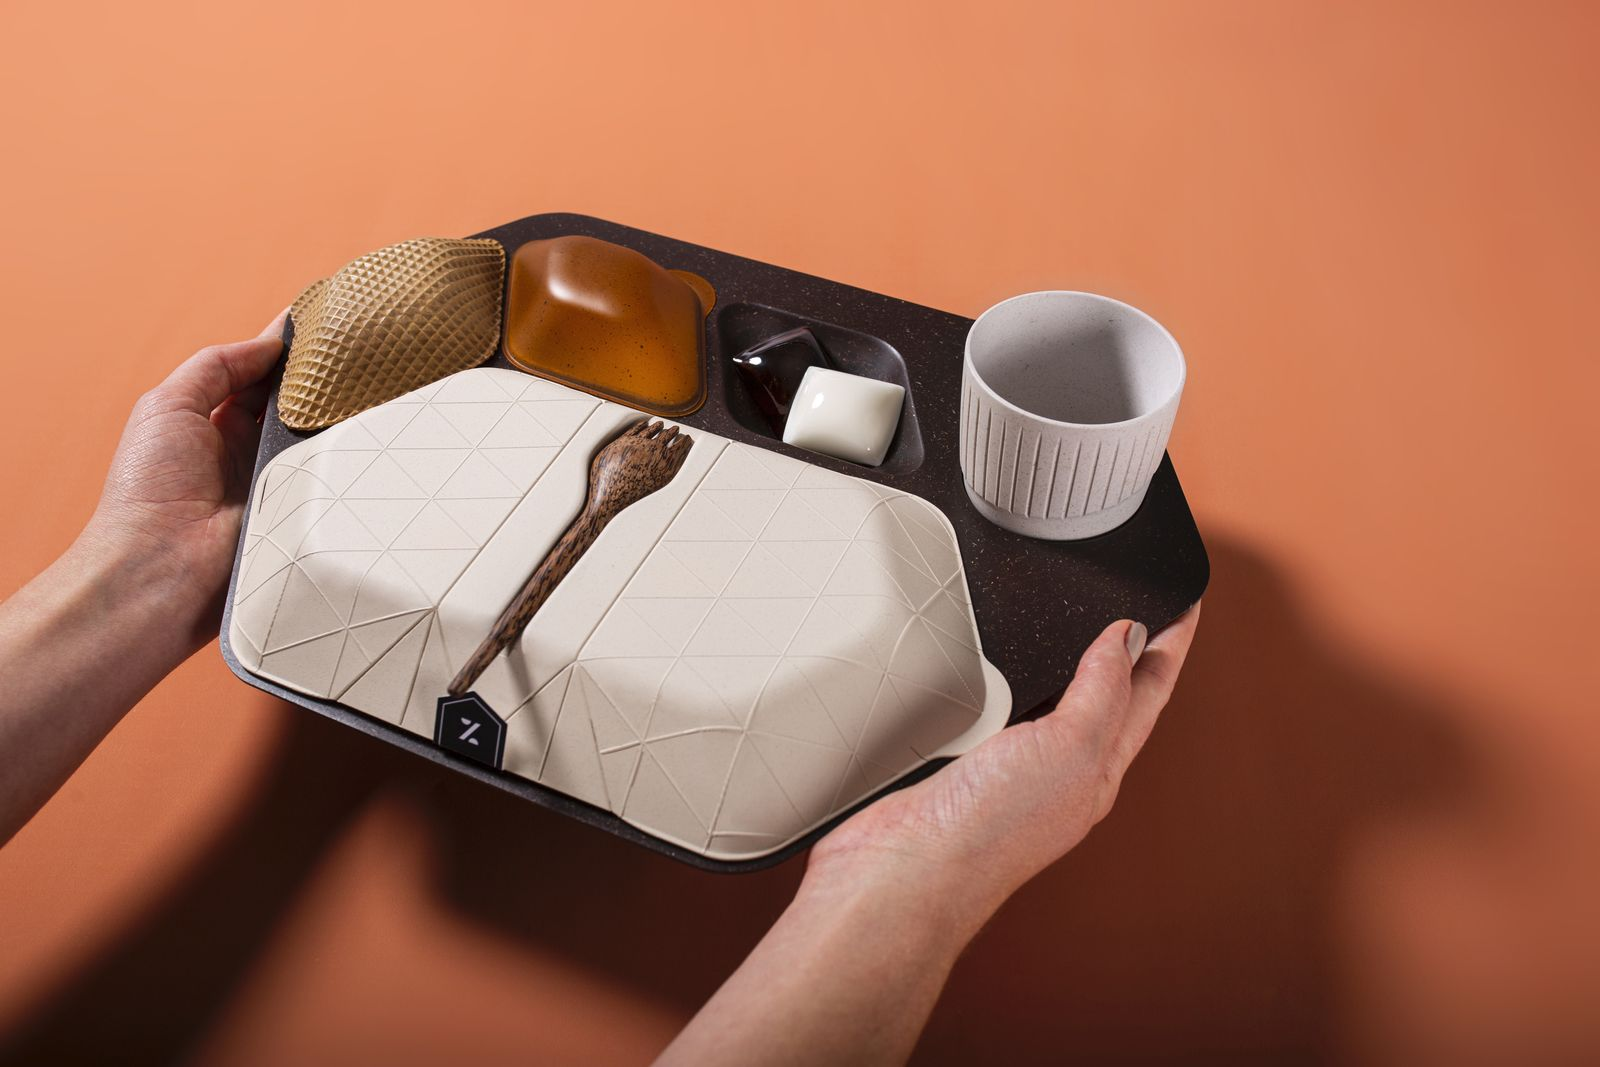 Crystal Cabin Award / PriestmanGoode / Zero - economy meal tray